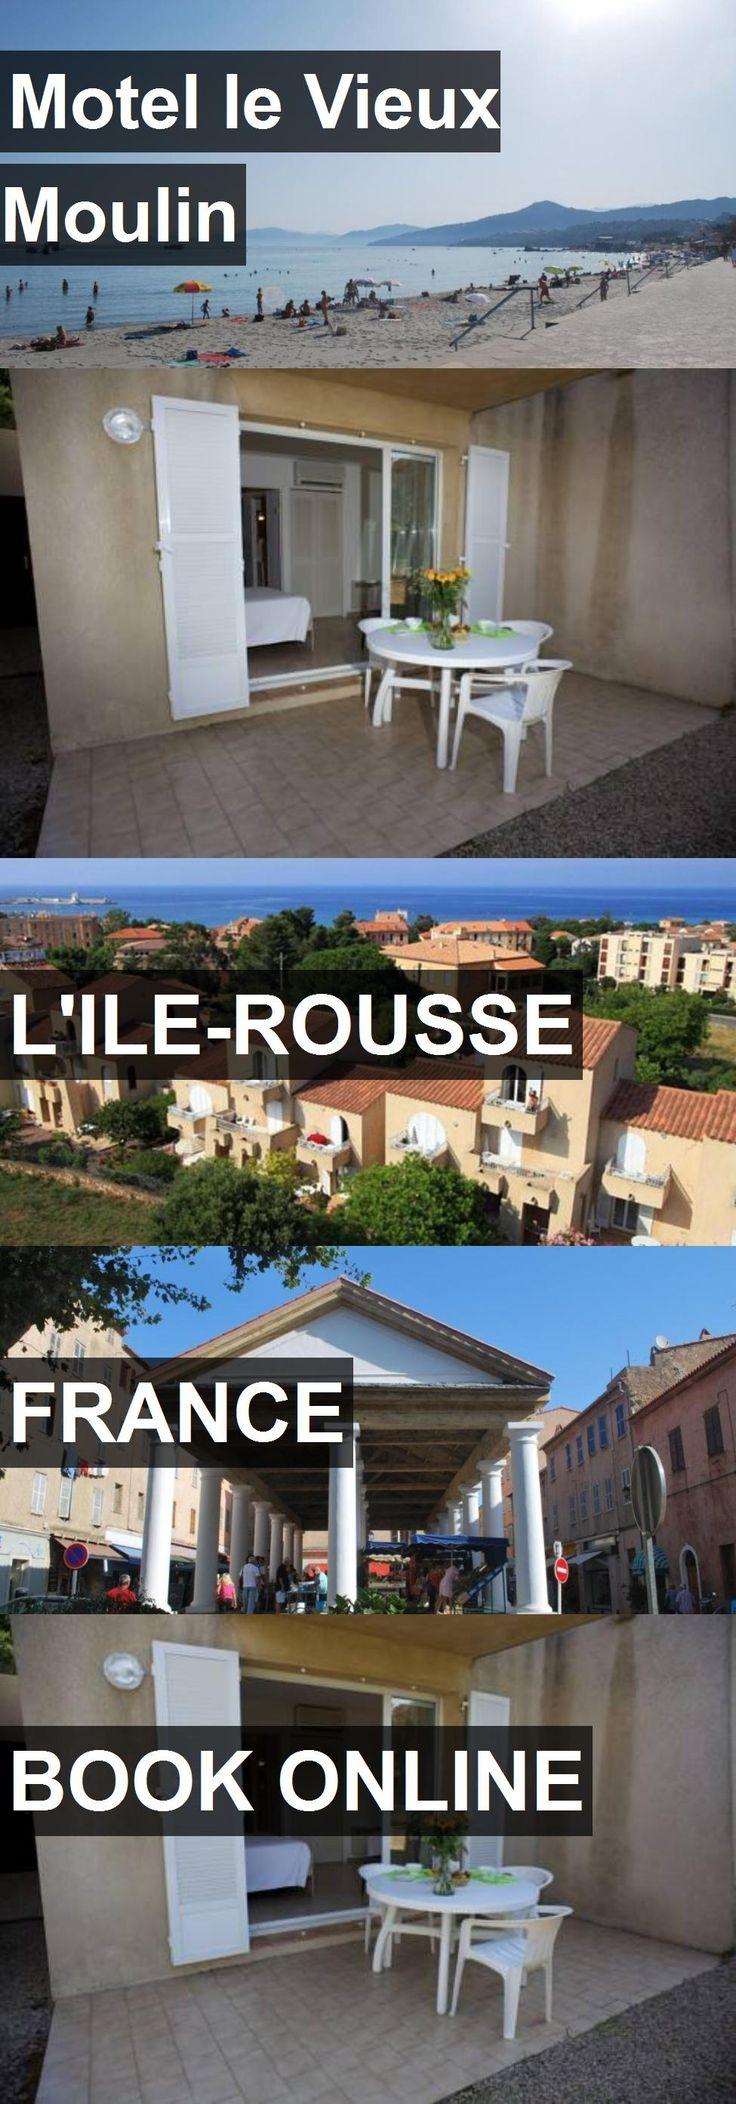 Hotel Motel le Vieux Moulin in L'Ile-Rousse, France. For more information, photos, reviews and best prices please follow the link. #France #L'Ile-Rousse #travel #vacation #hotel